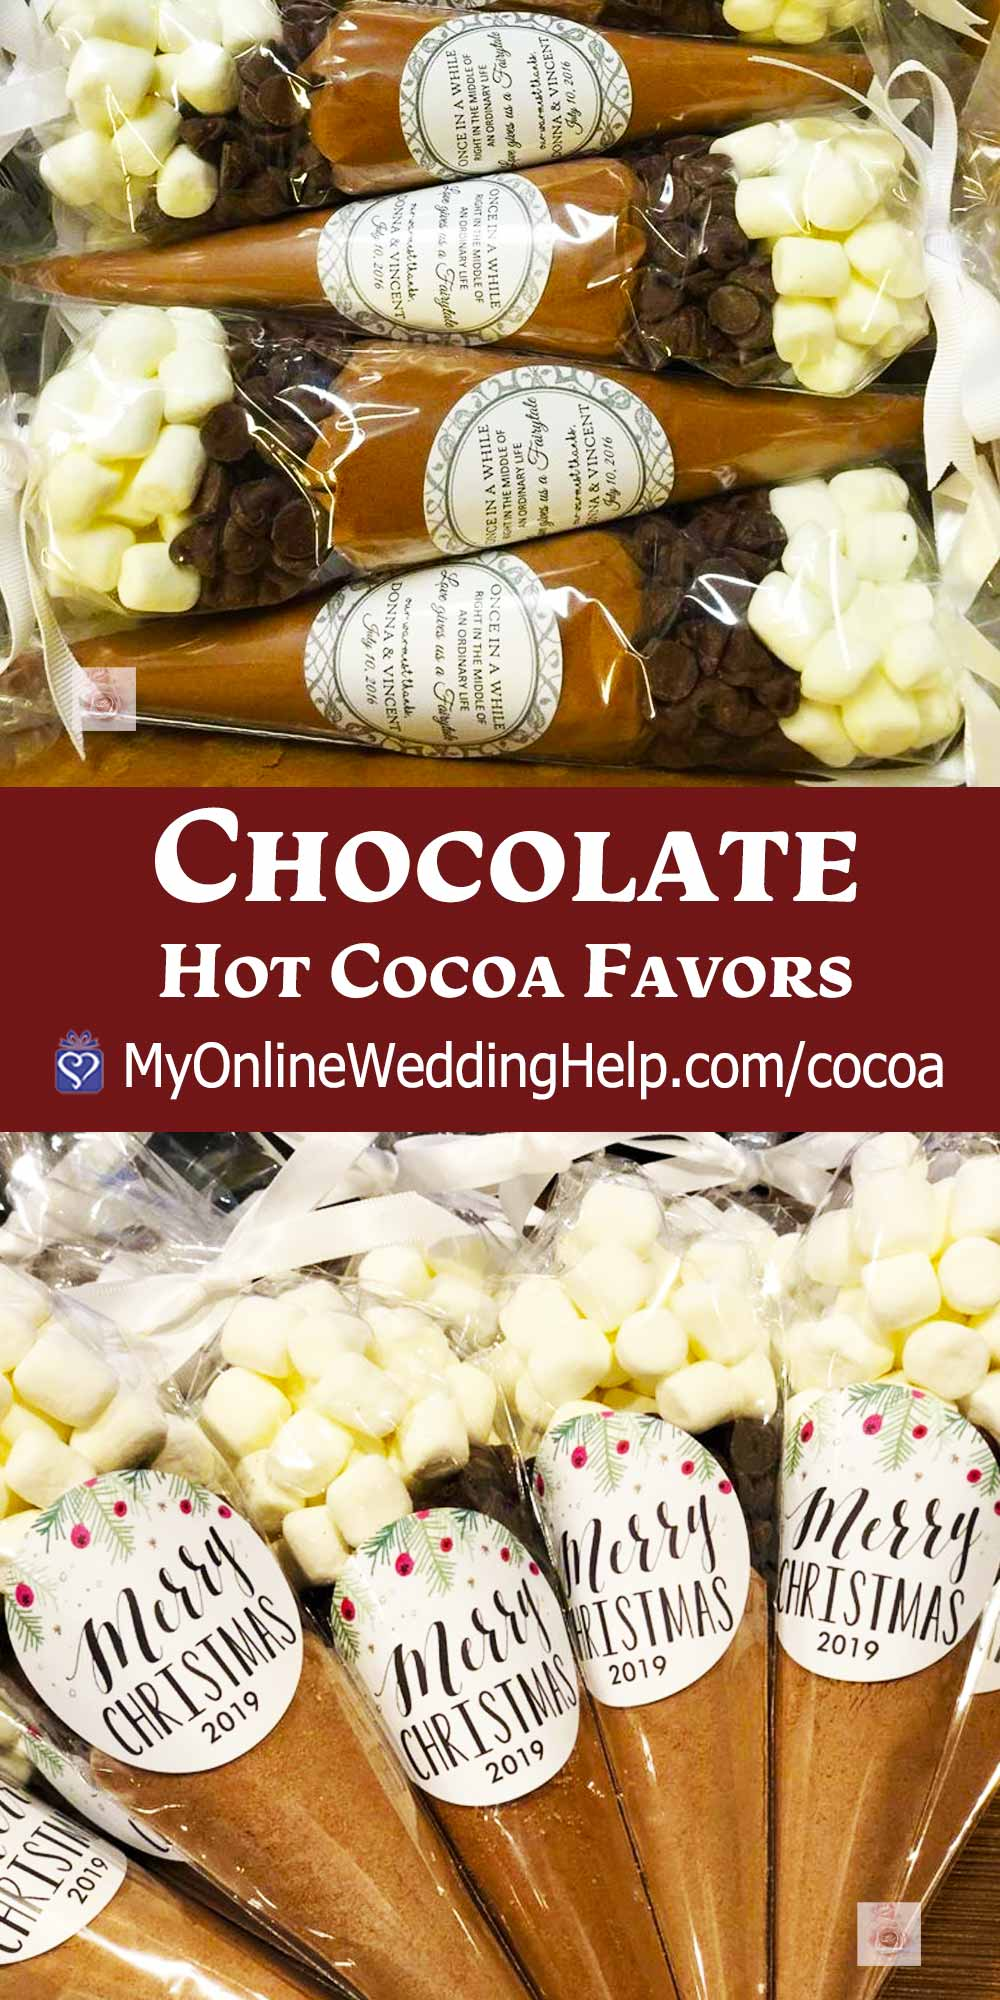 Unique Hot Chocolate Favors - Cocoa Mix in Cones